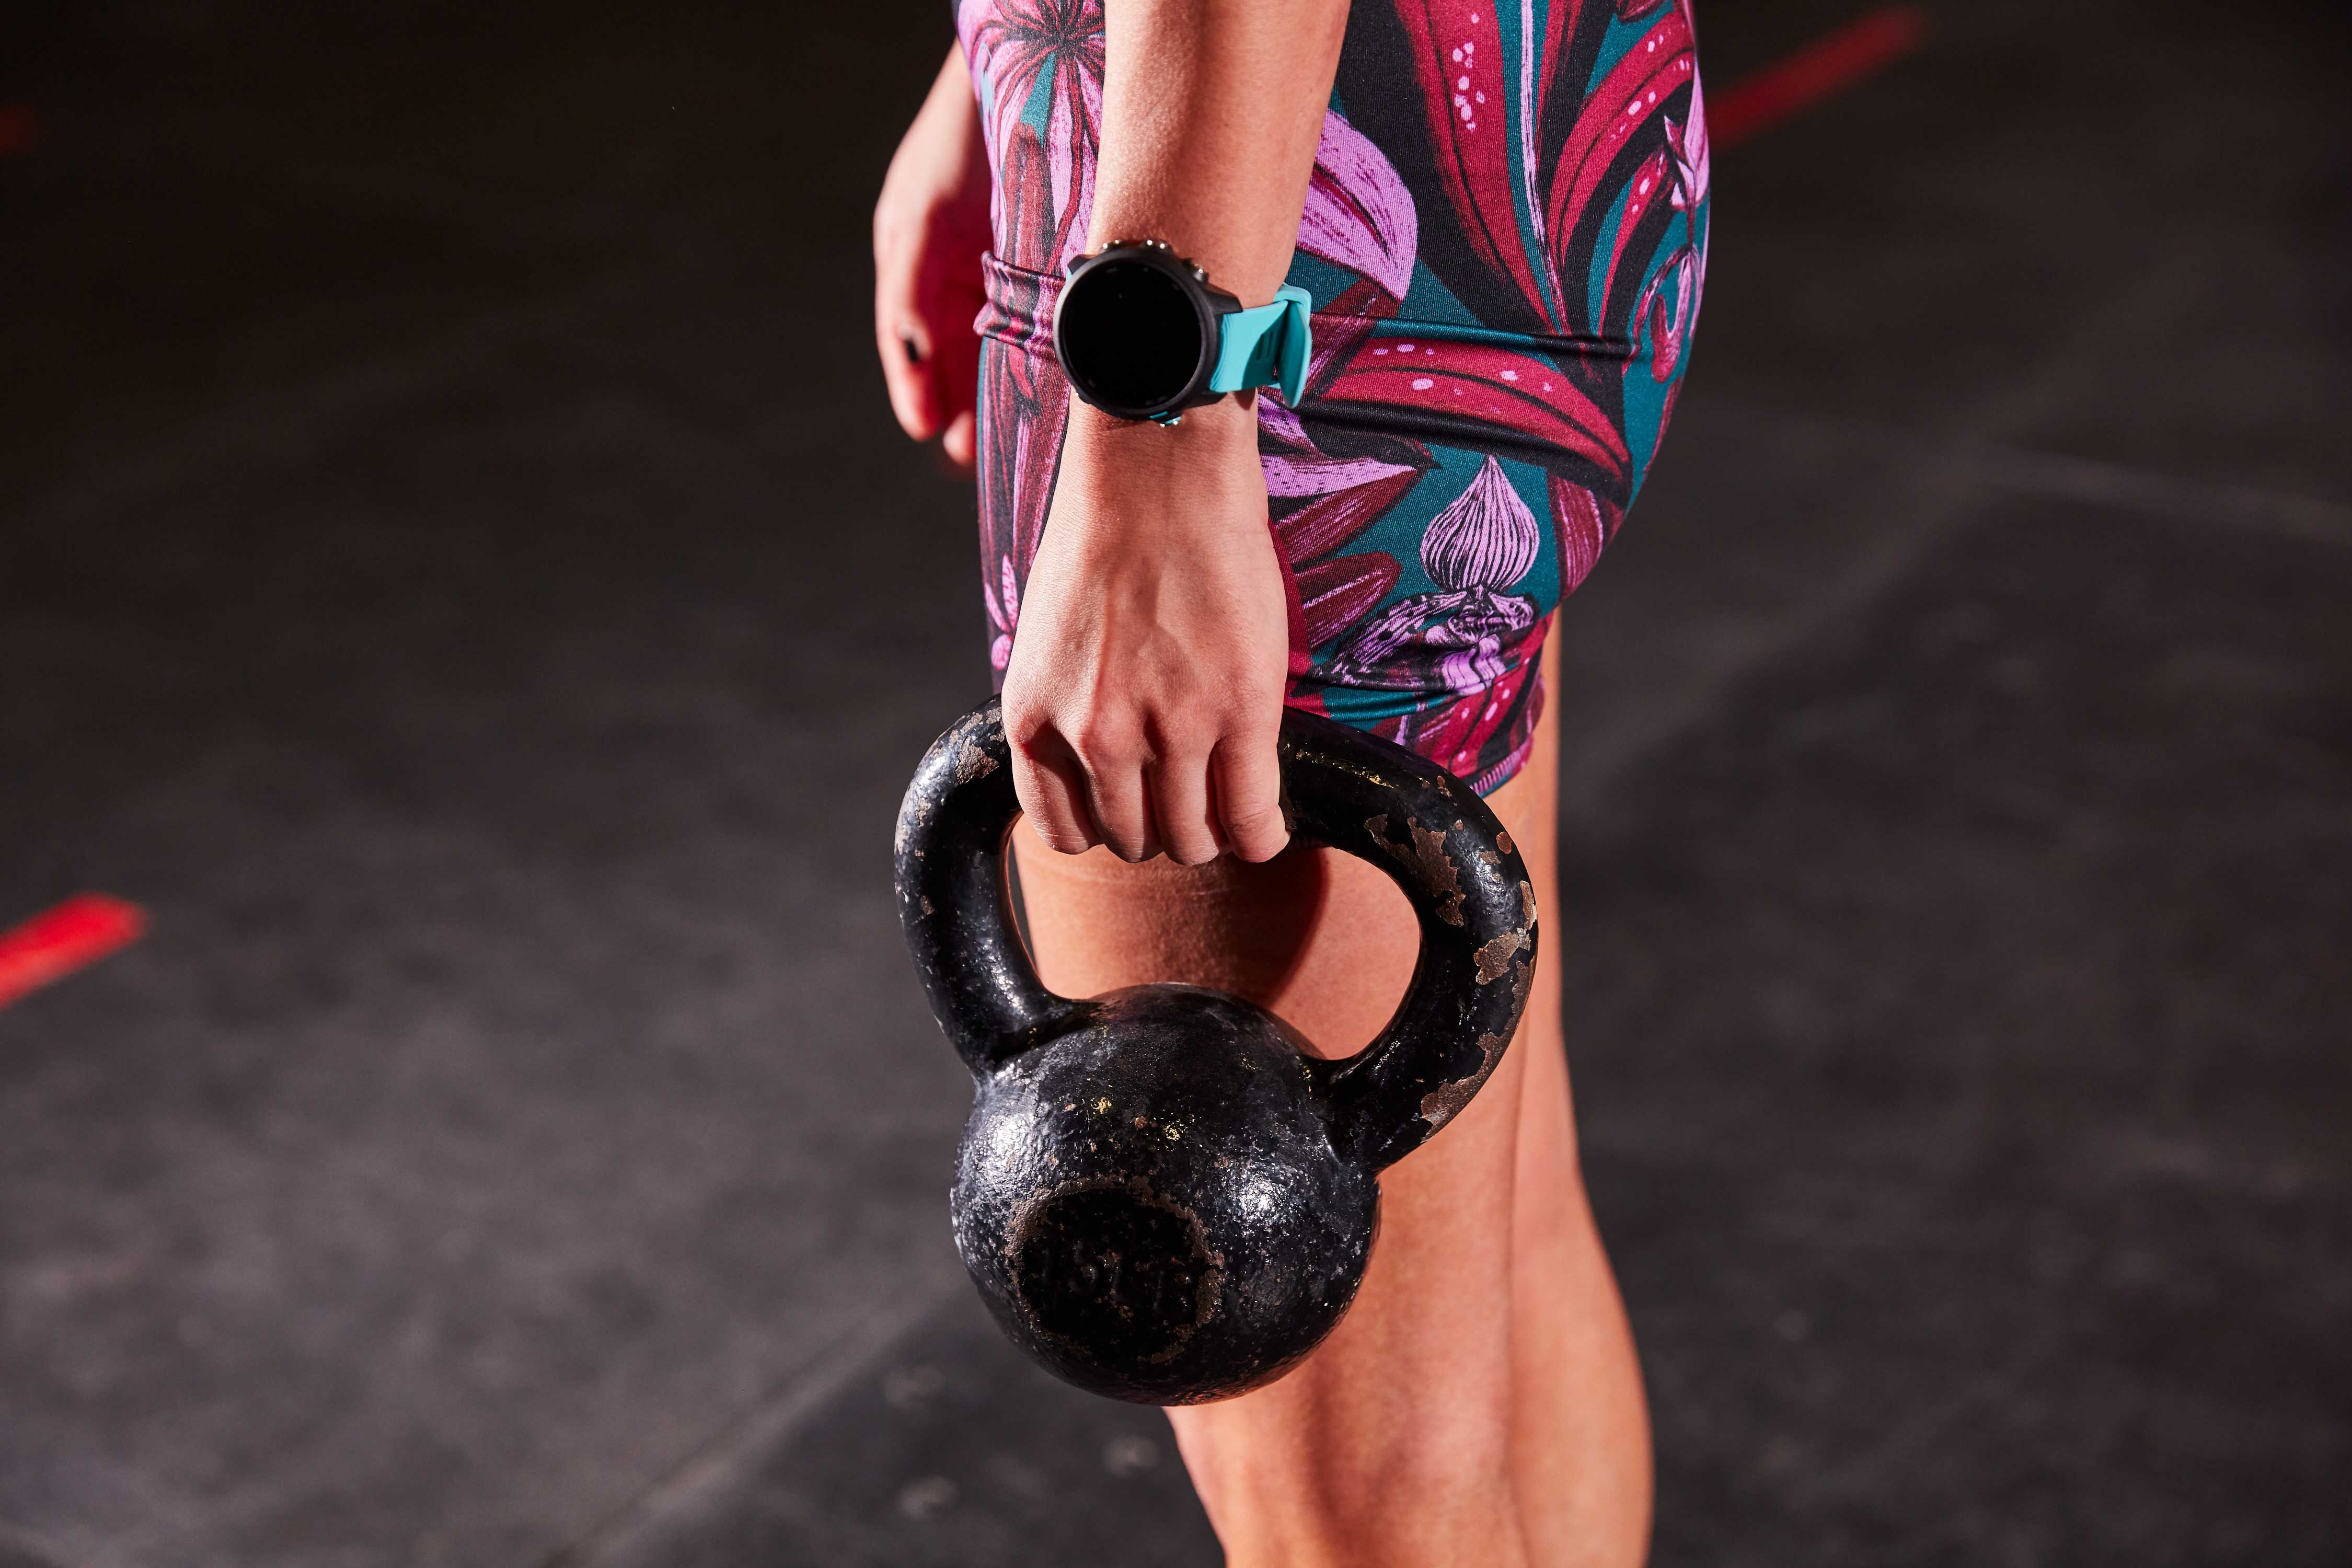 8 Kettlebell Exercises To Boost Your Leg Strength and Endurance